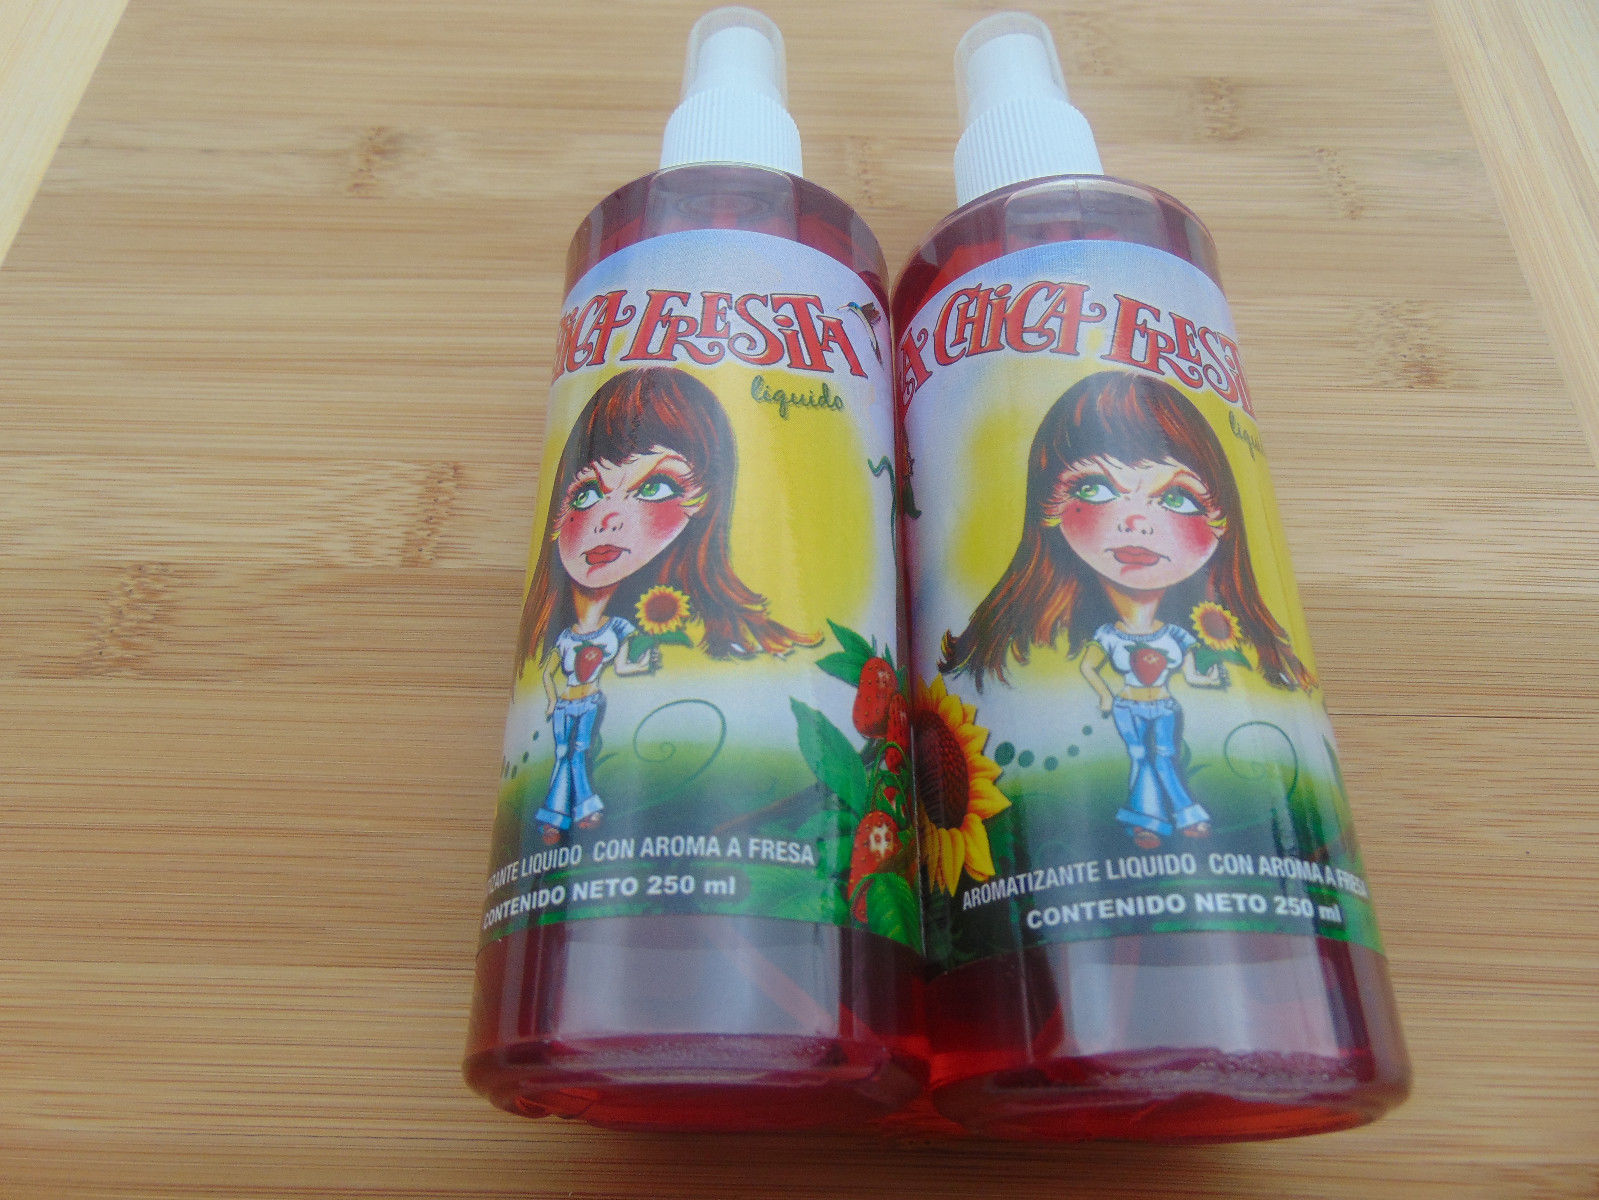 LA CHICA FRESITA Air Freshener Spray Liquido/Liquid 250MI Strawberry Scent 2pcs